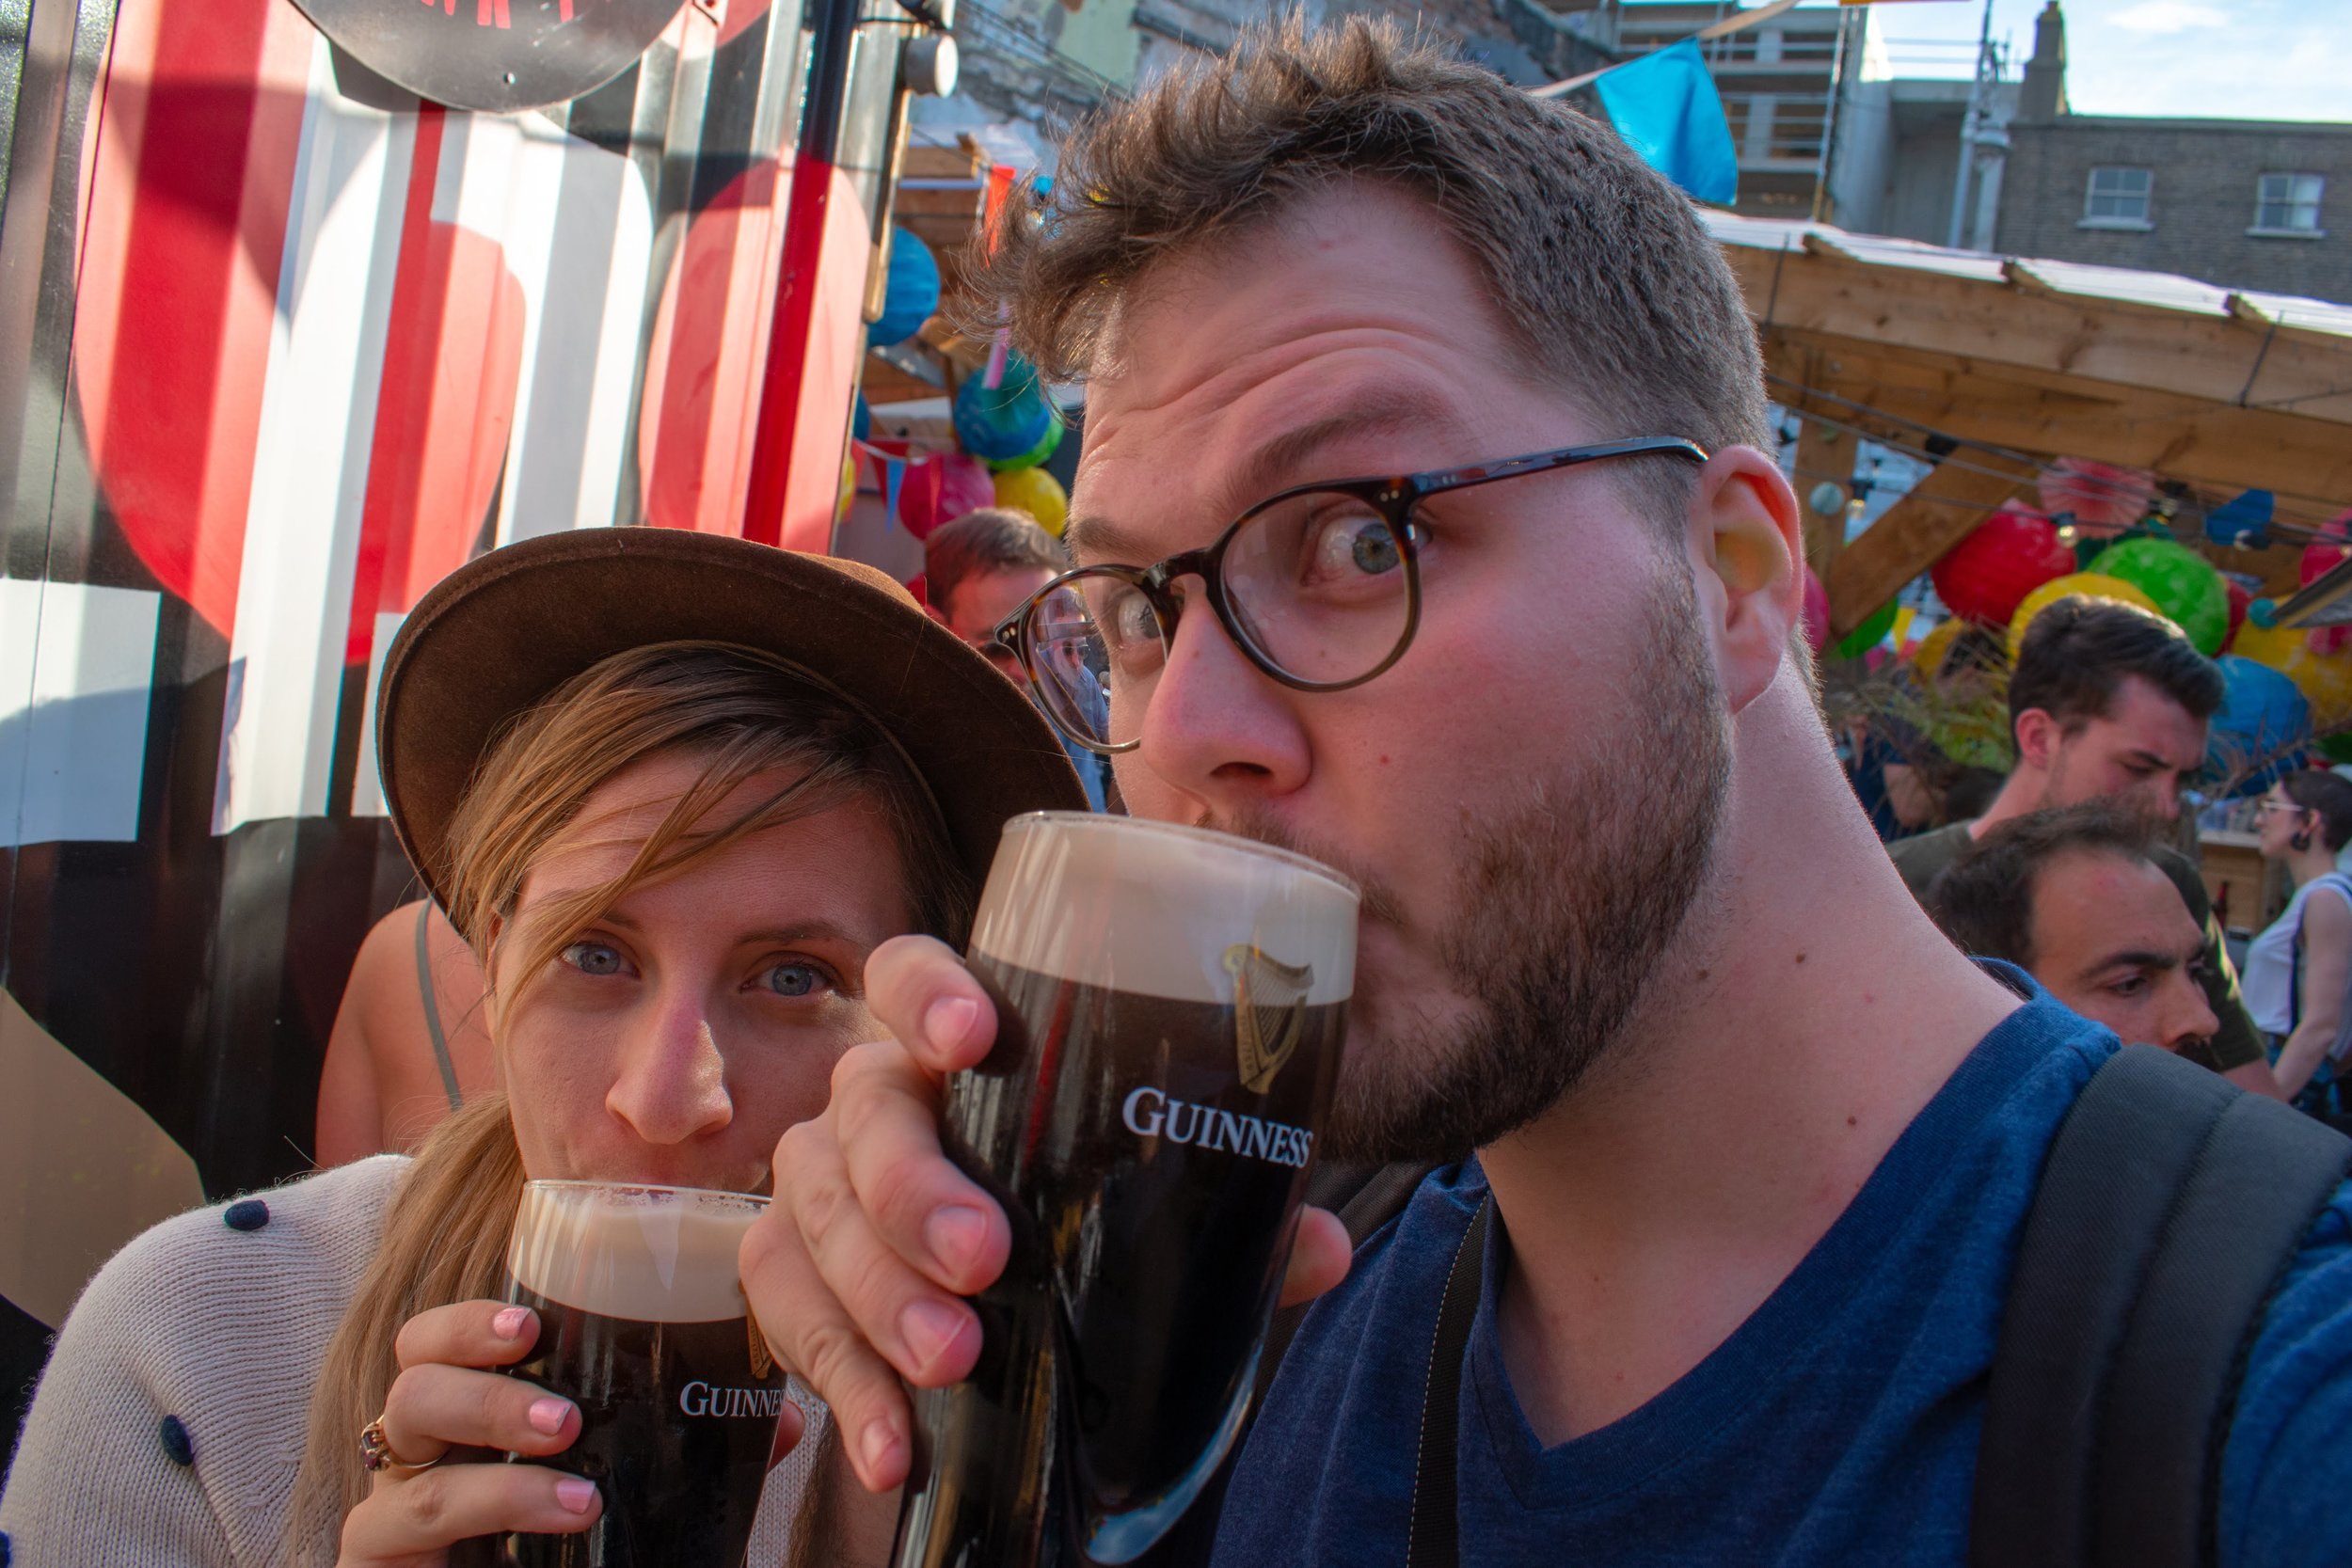 uprooted-traveler-dublin-ireland-guinness-vegan-guide-eatyard-food-truck-park.jpg